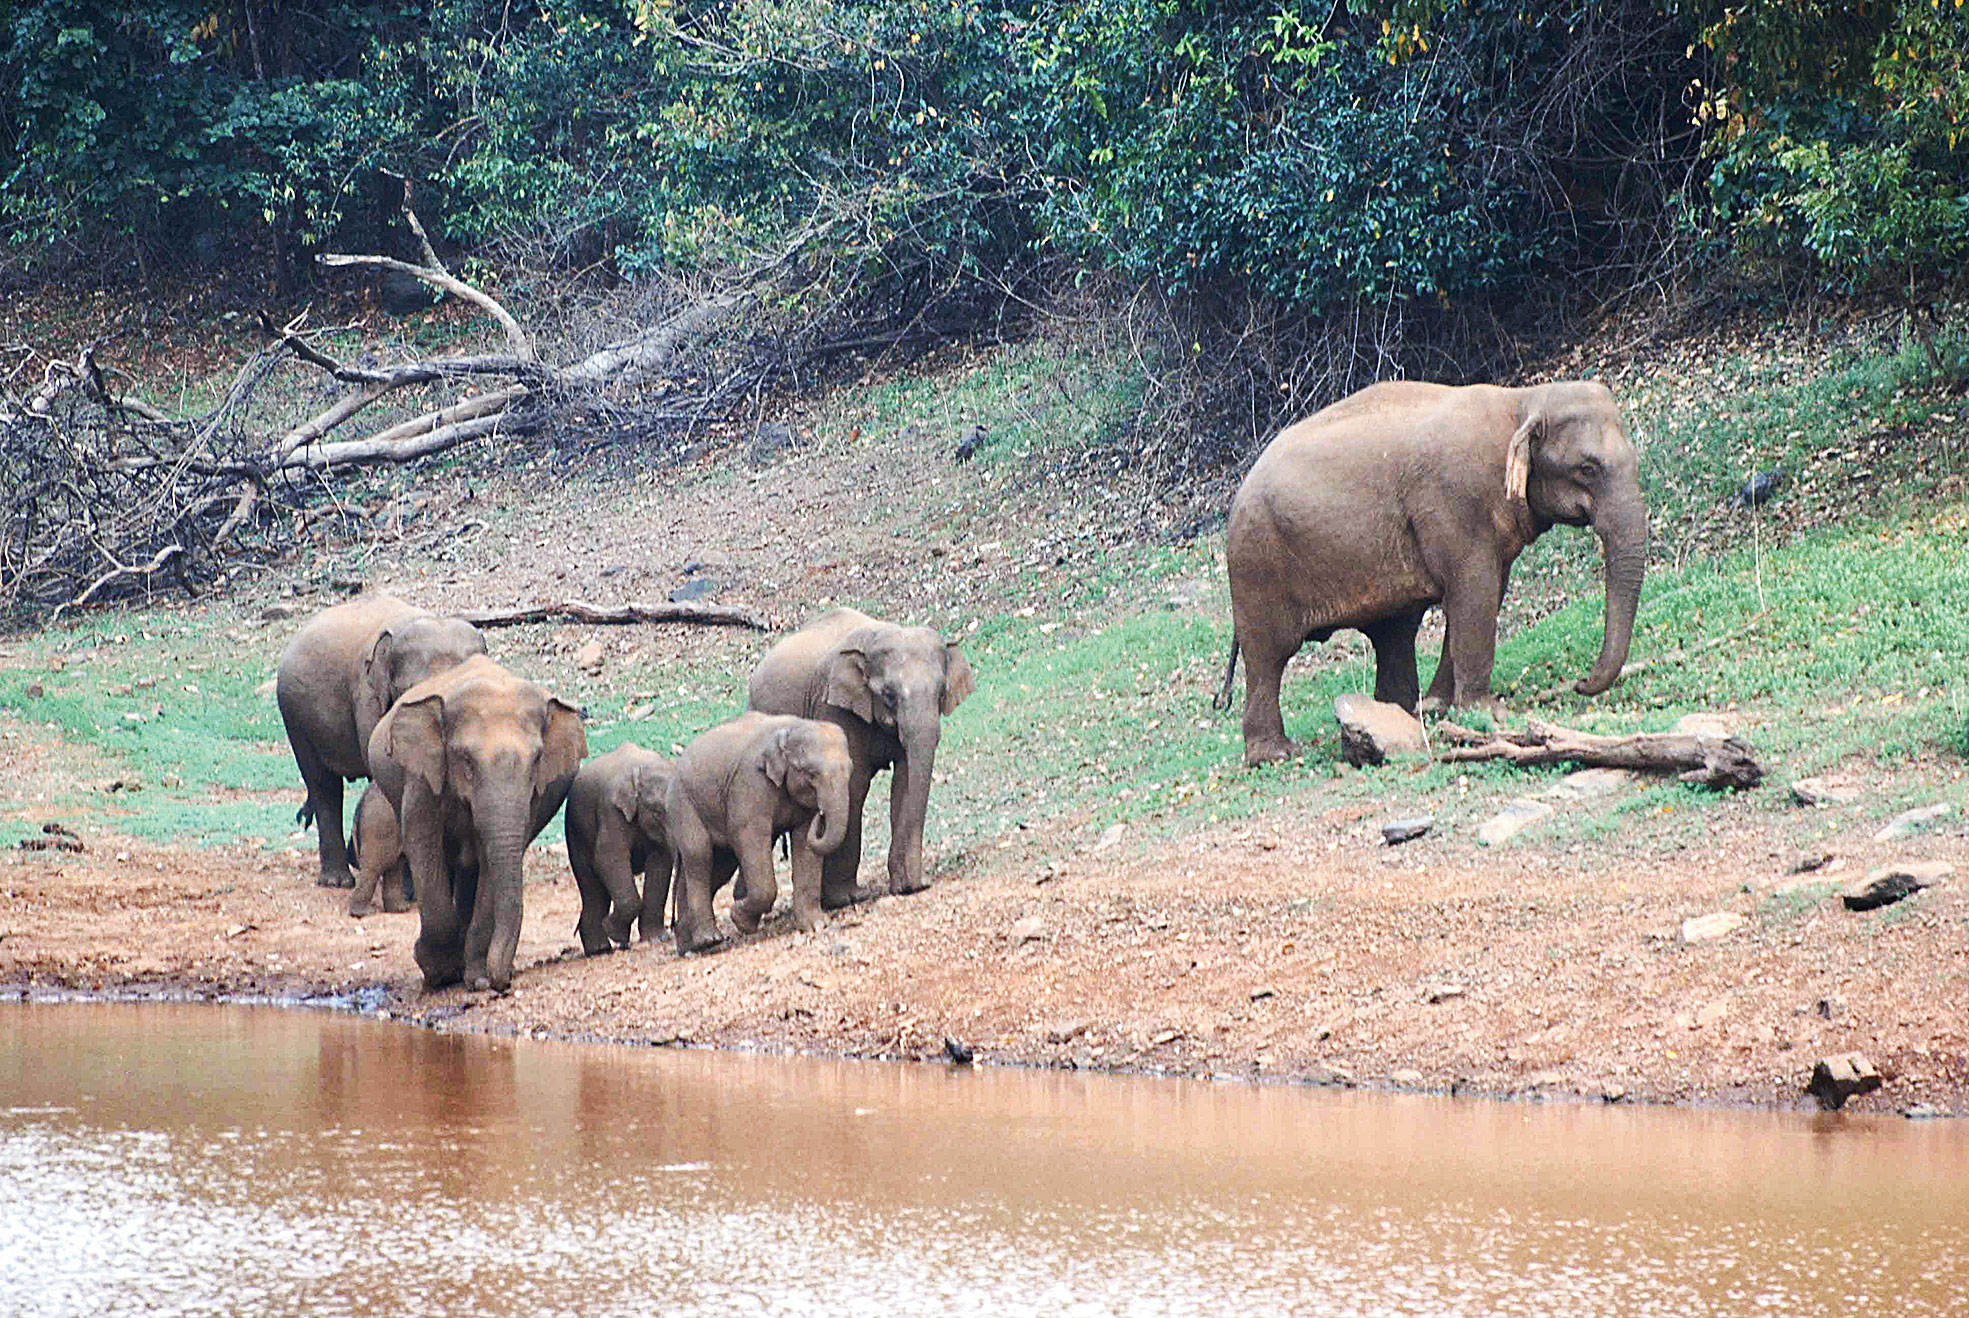 A forest guard said they were happy that the elephants were back home.